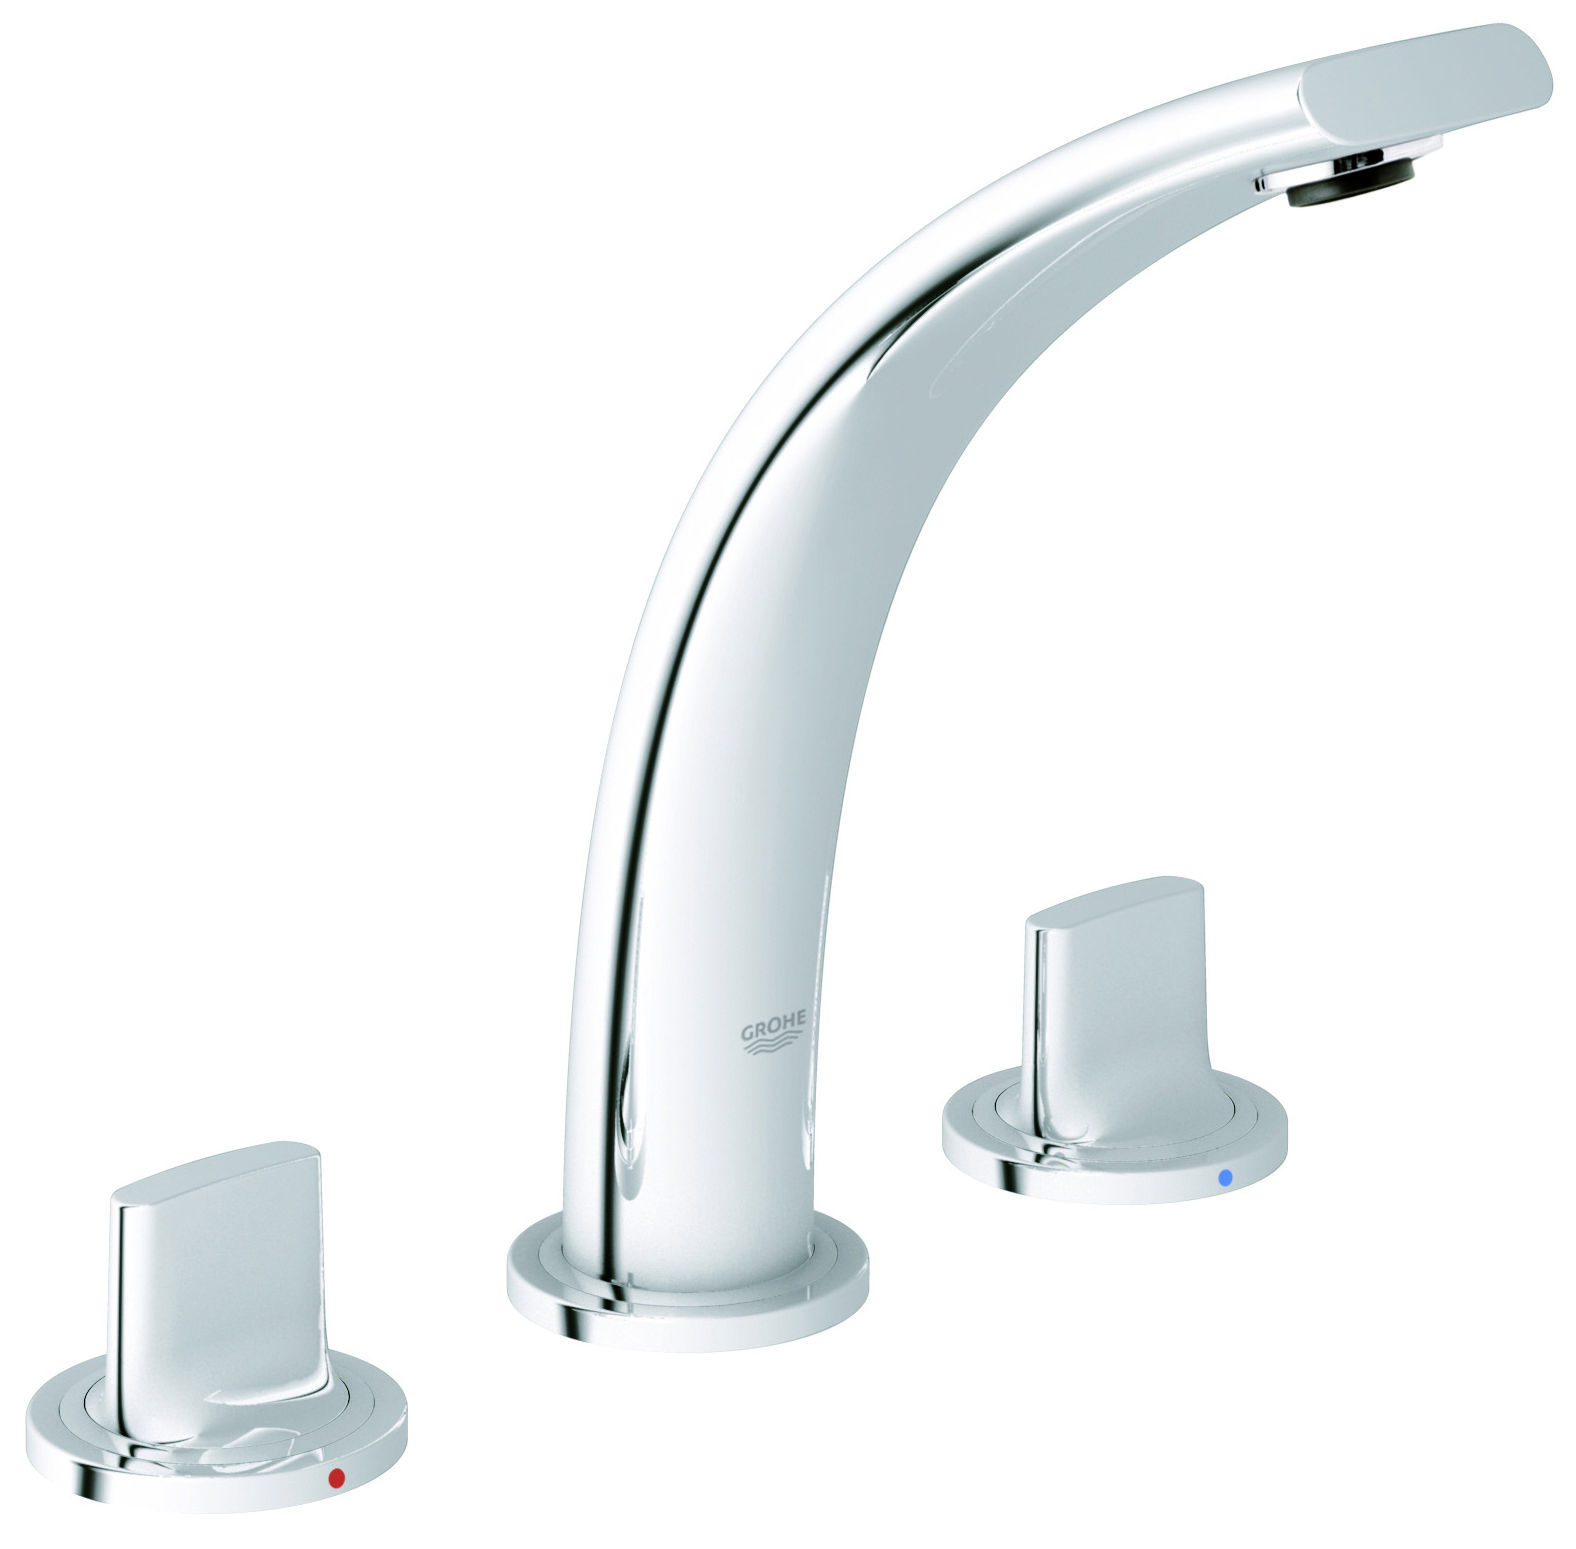 mount chicago waterfall design www groheamerica ideas fittings decor bath grohe manual with elegant shower fauc of bathroom groen glass full luxury lavatory bathrooms wall com size moen faucets faucet sink tub